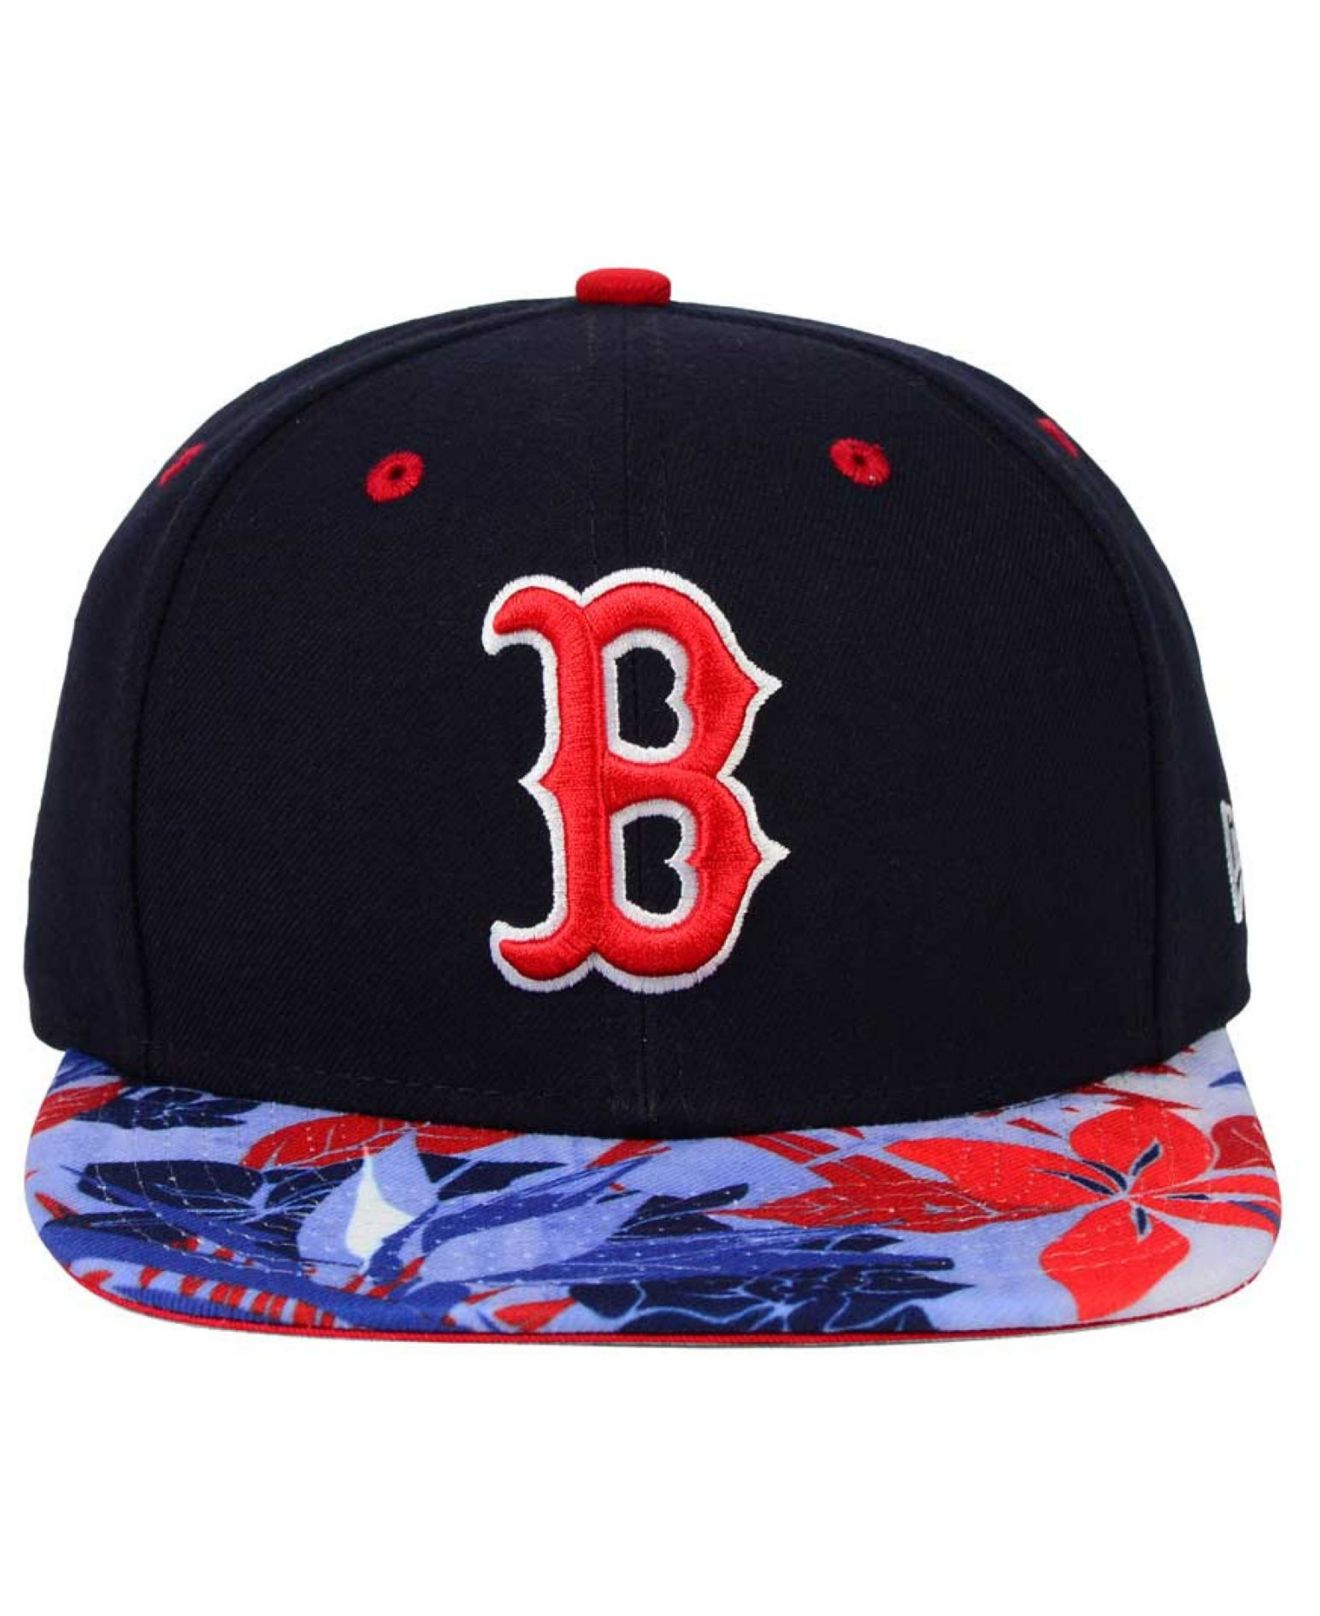 huge selection of 0aa53 97e45 88346 dc4c3  get lyst ktz boston red sox floral viz 9fifty snapback cap in  blue for men d662c